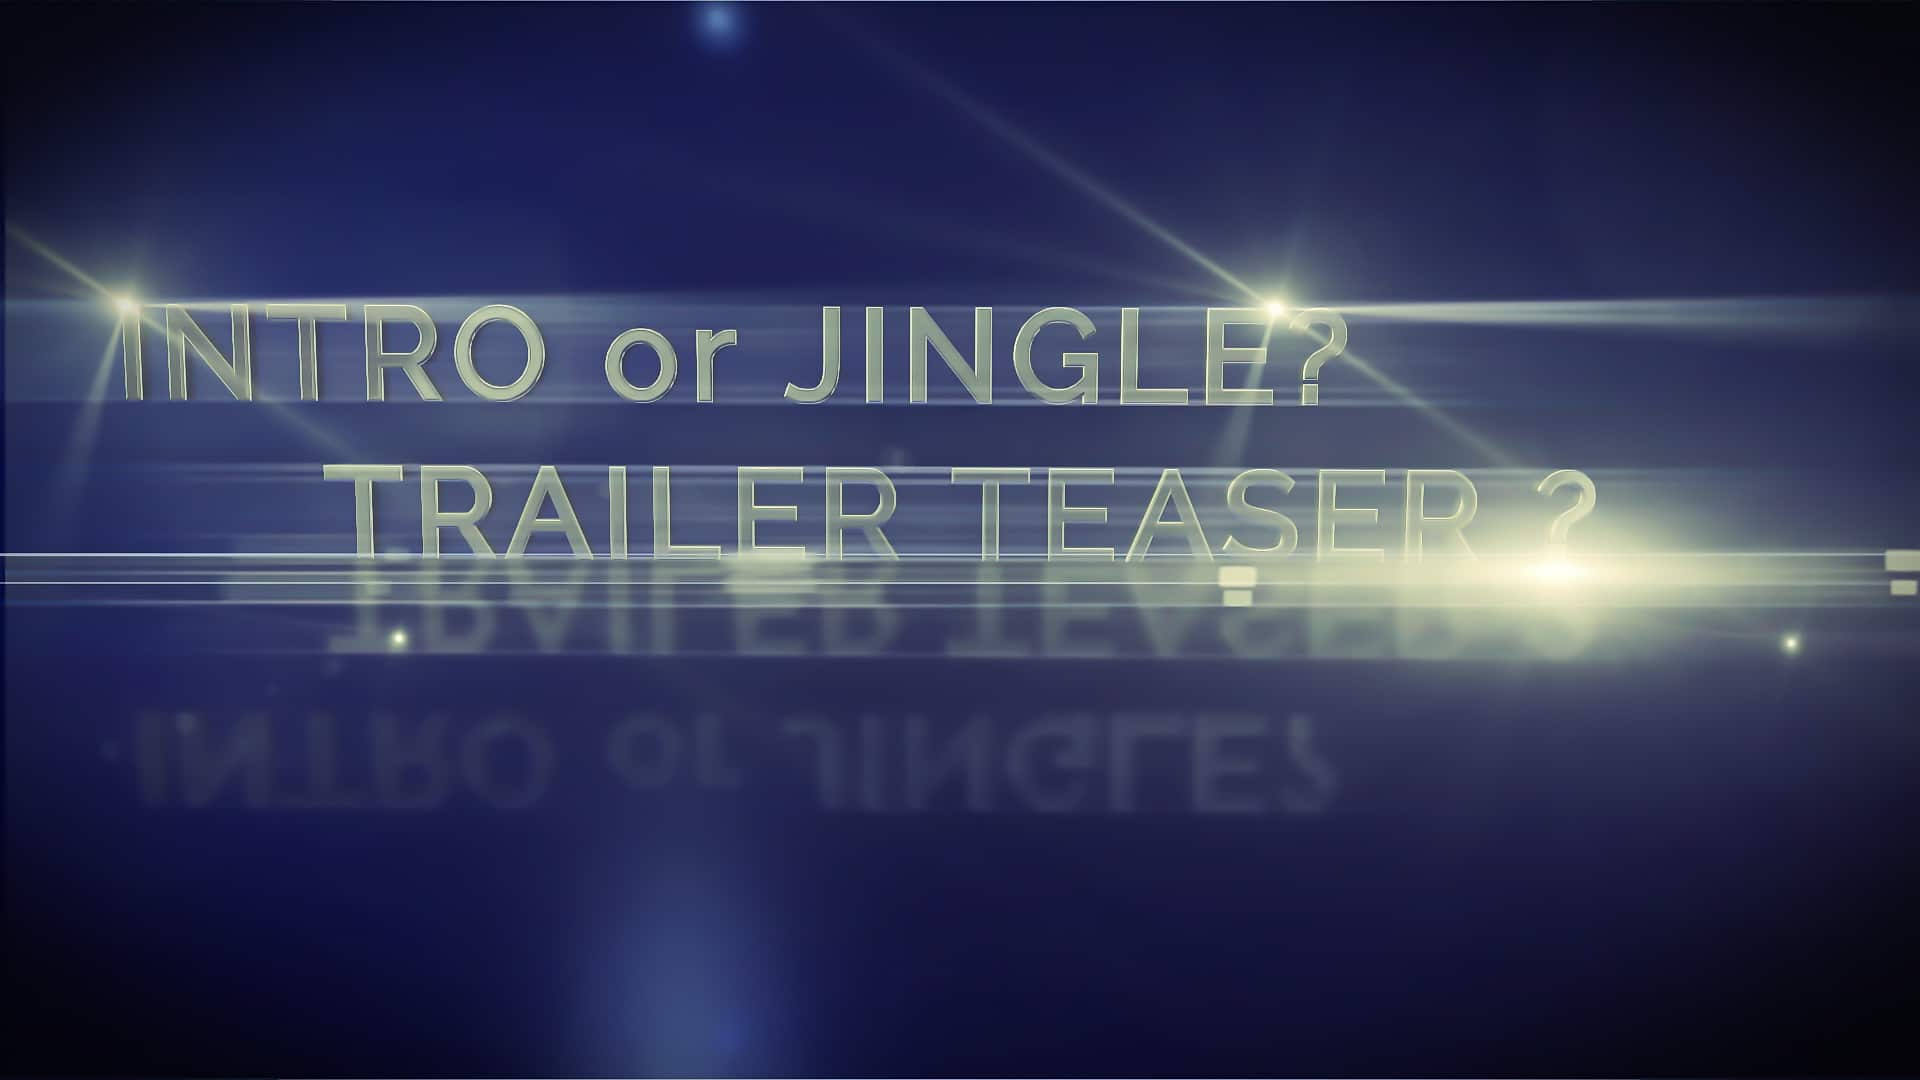 Difference between Teaser, Trailer, Intro and Jingle